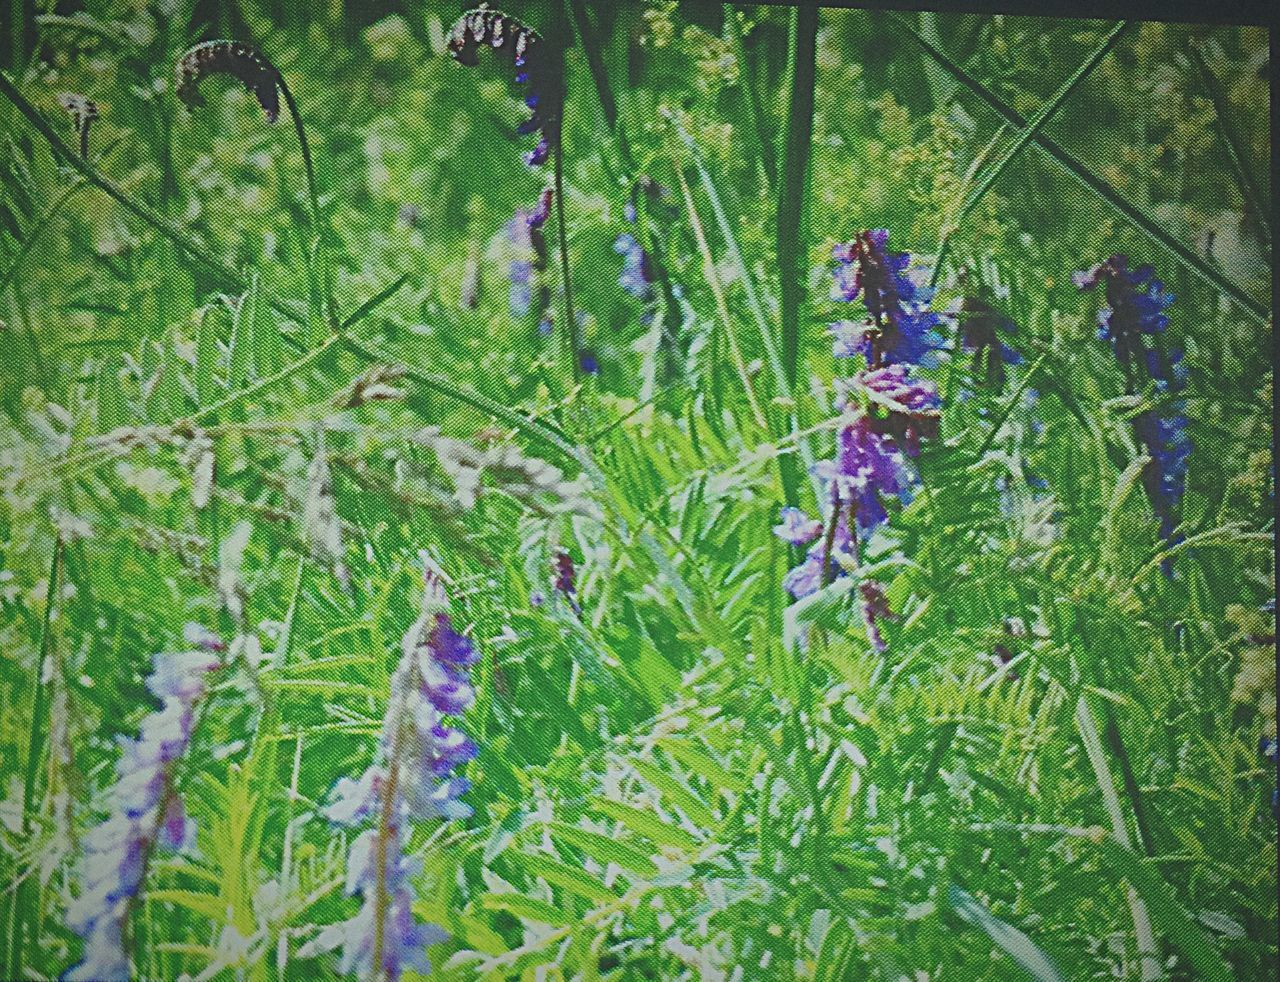 growth, nature, purple, plant, flower, green color, beauty in nature, no people, outdoors, grass, day, close-up